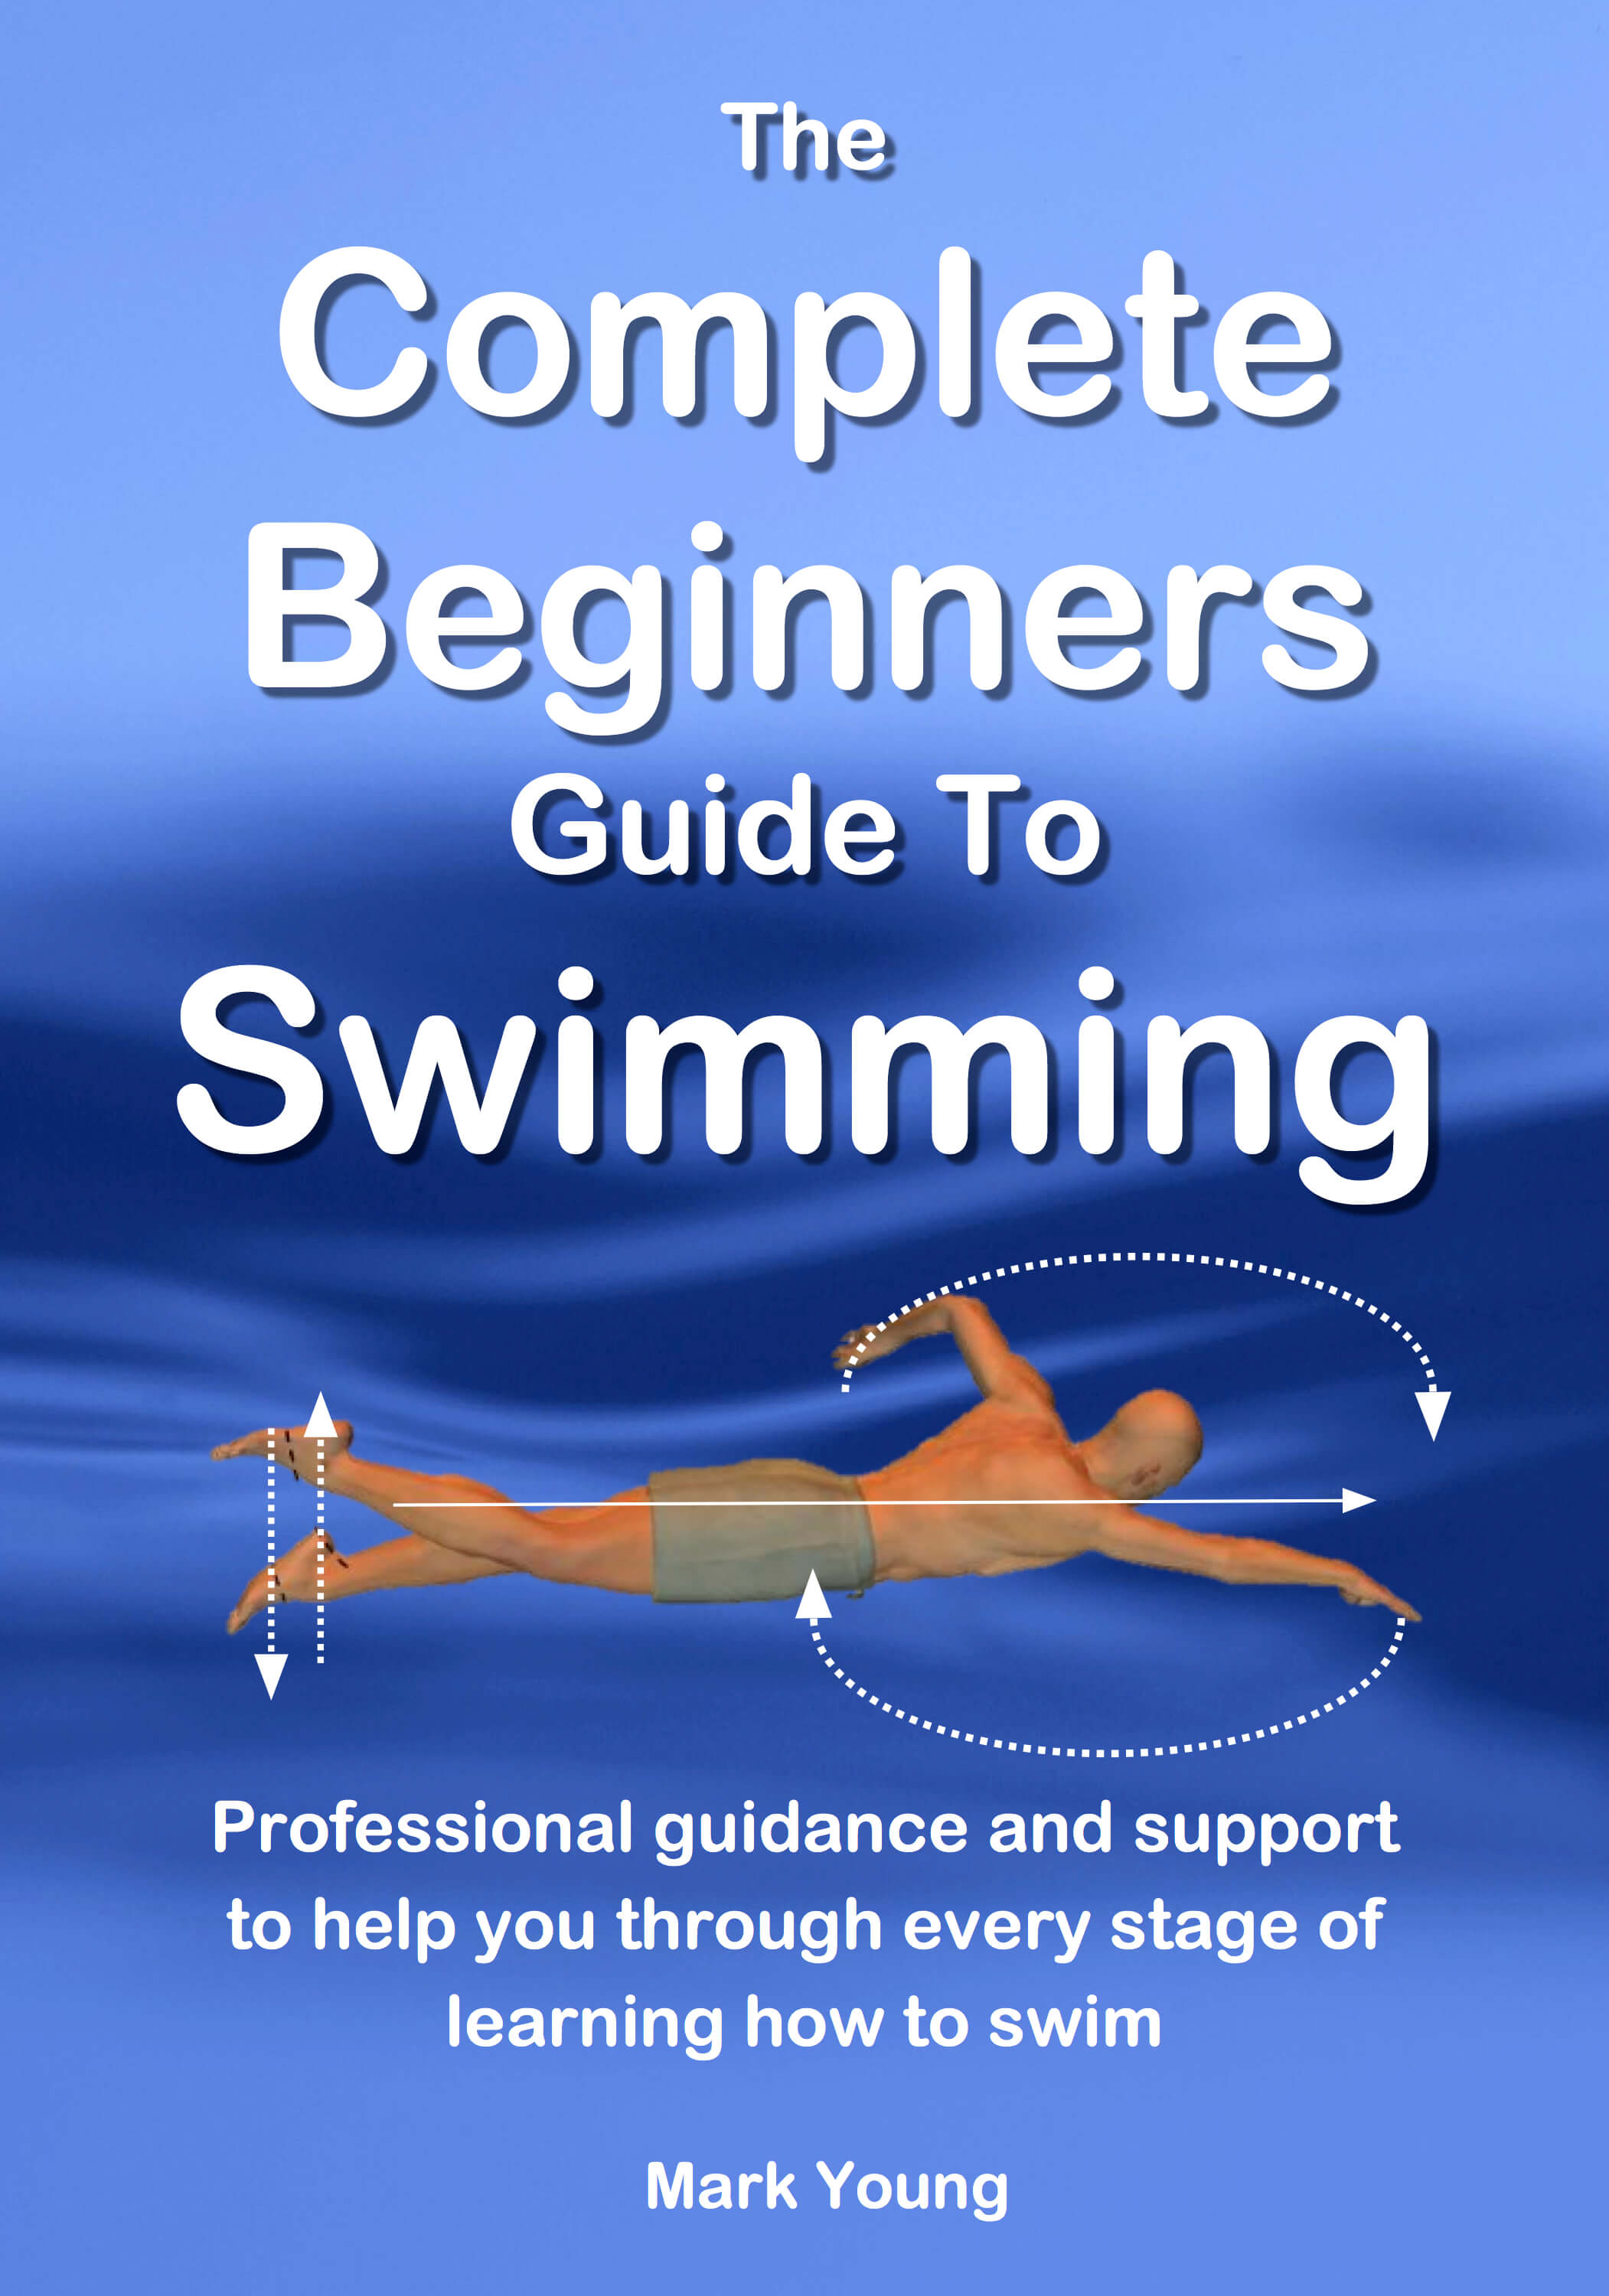 Beginners Swimming guide for all things leaning how to swim